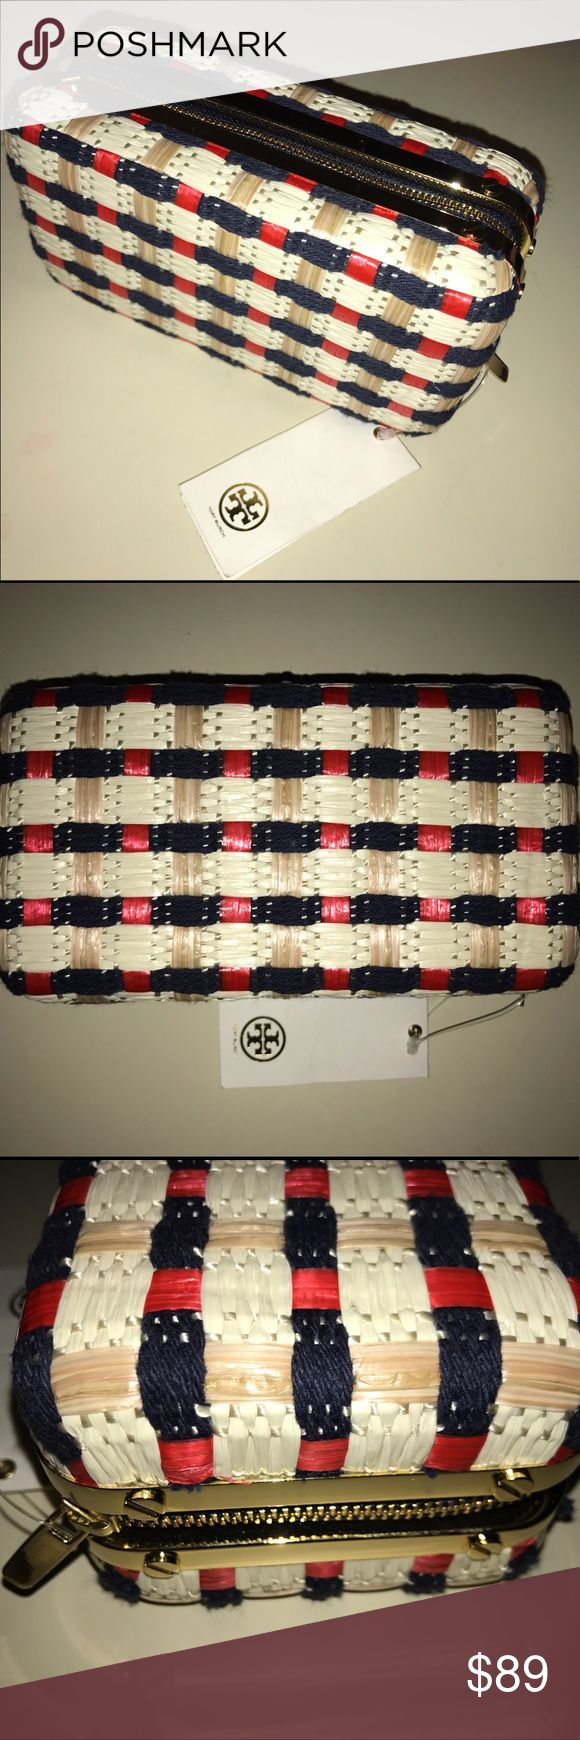 """Tory Burch Daisy Straw Nautical Clutch Purse Bag New With Tags ~ Originally $325 ~ Tory Burch Daisy Straw clutch ~ Nautical, summery woven textile and straw, red navy blue and cream ~ Hard, Box like with zip around ~ Unused but blue material s a little """"fuzzy"""" from handling in store, hardware with very minor abrasion Tory Burch Bags Clutches & Wristlets"""